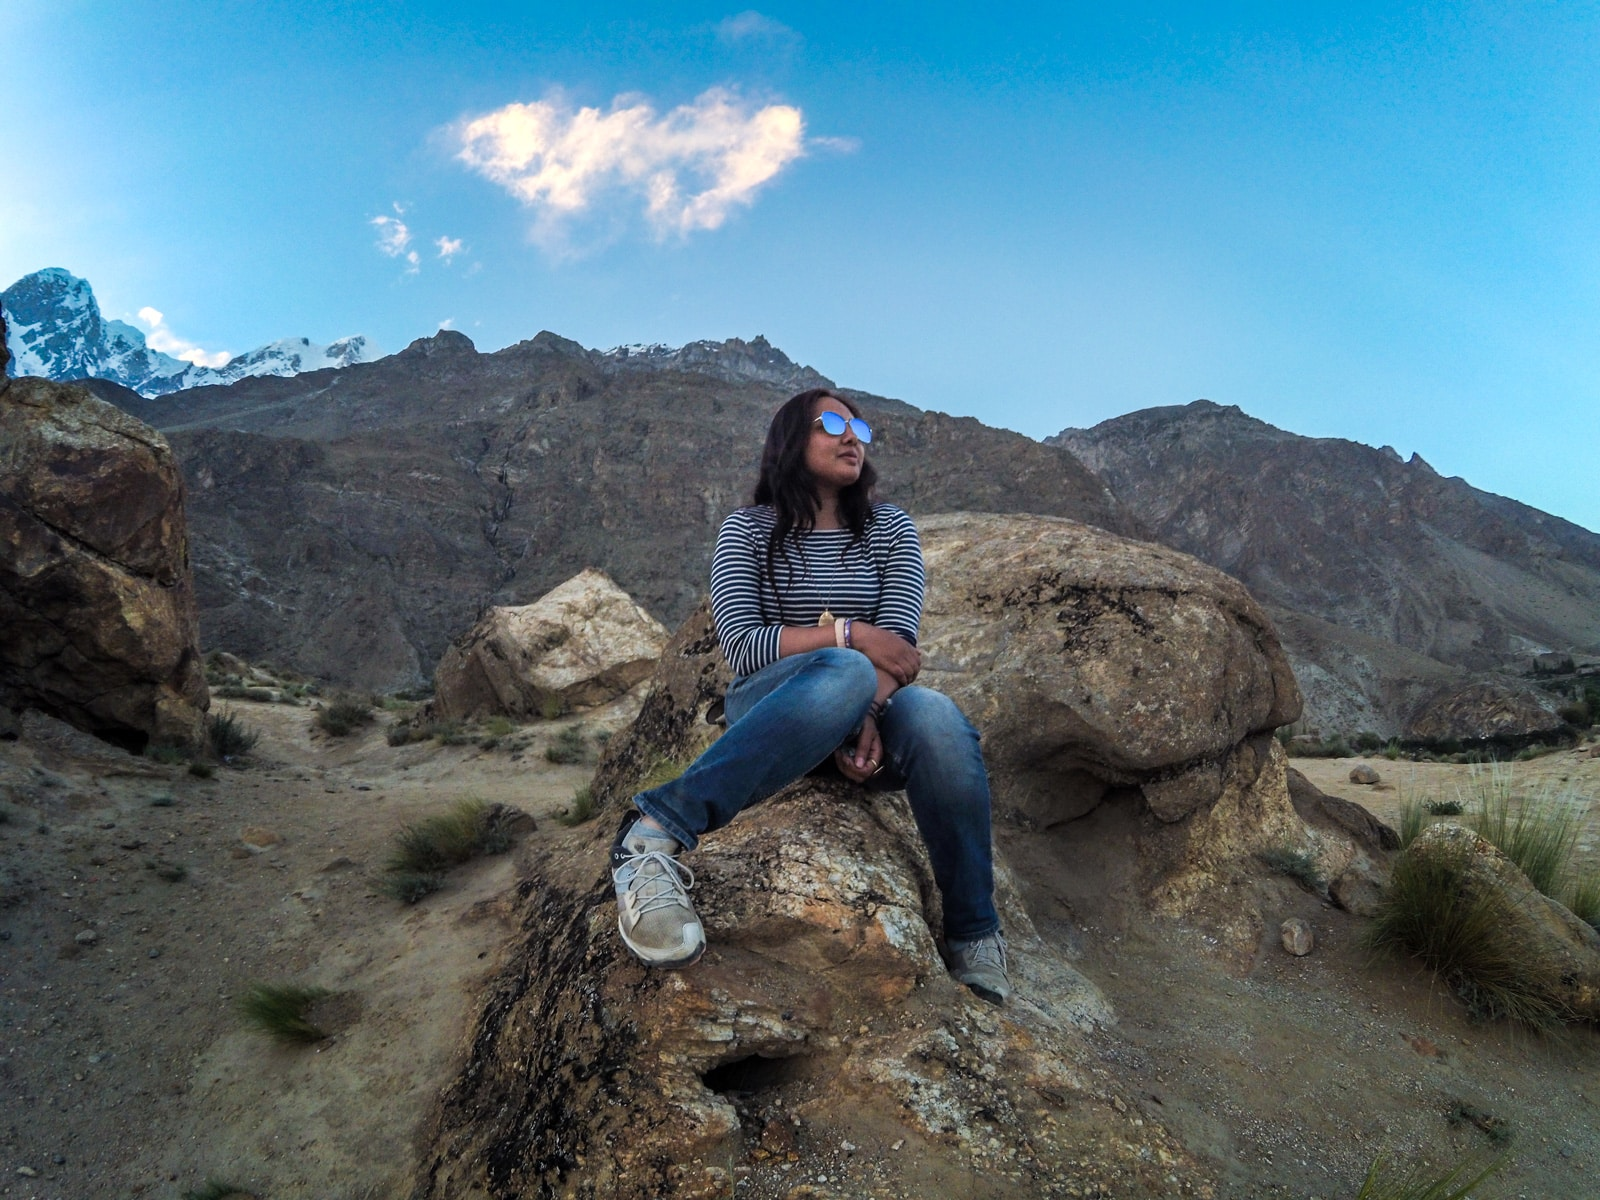 Bossy travelers interview with Aneeqa, head of Pakistan's first female-run tour company - Lost With Purpose travel blog